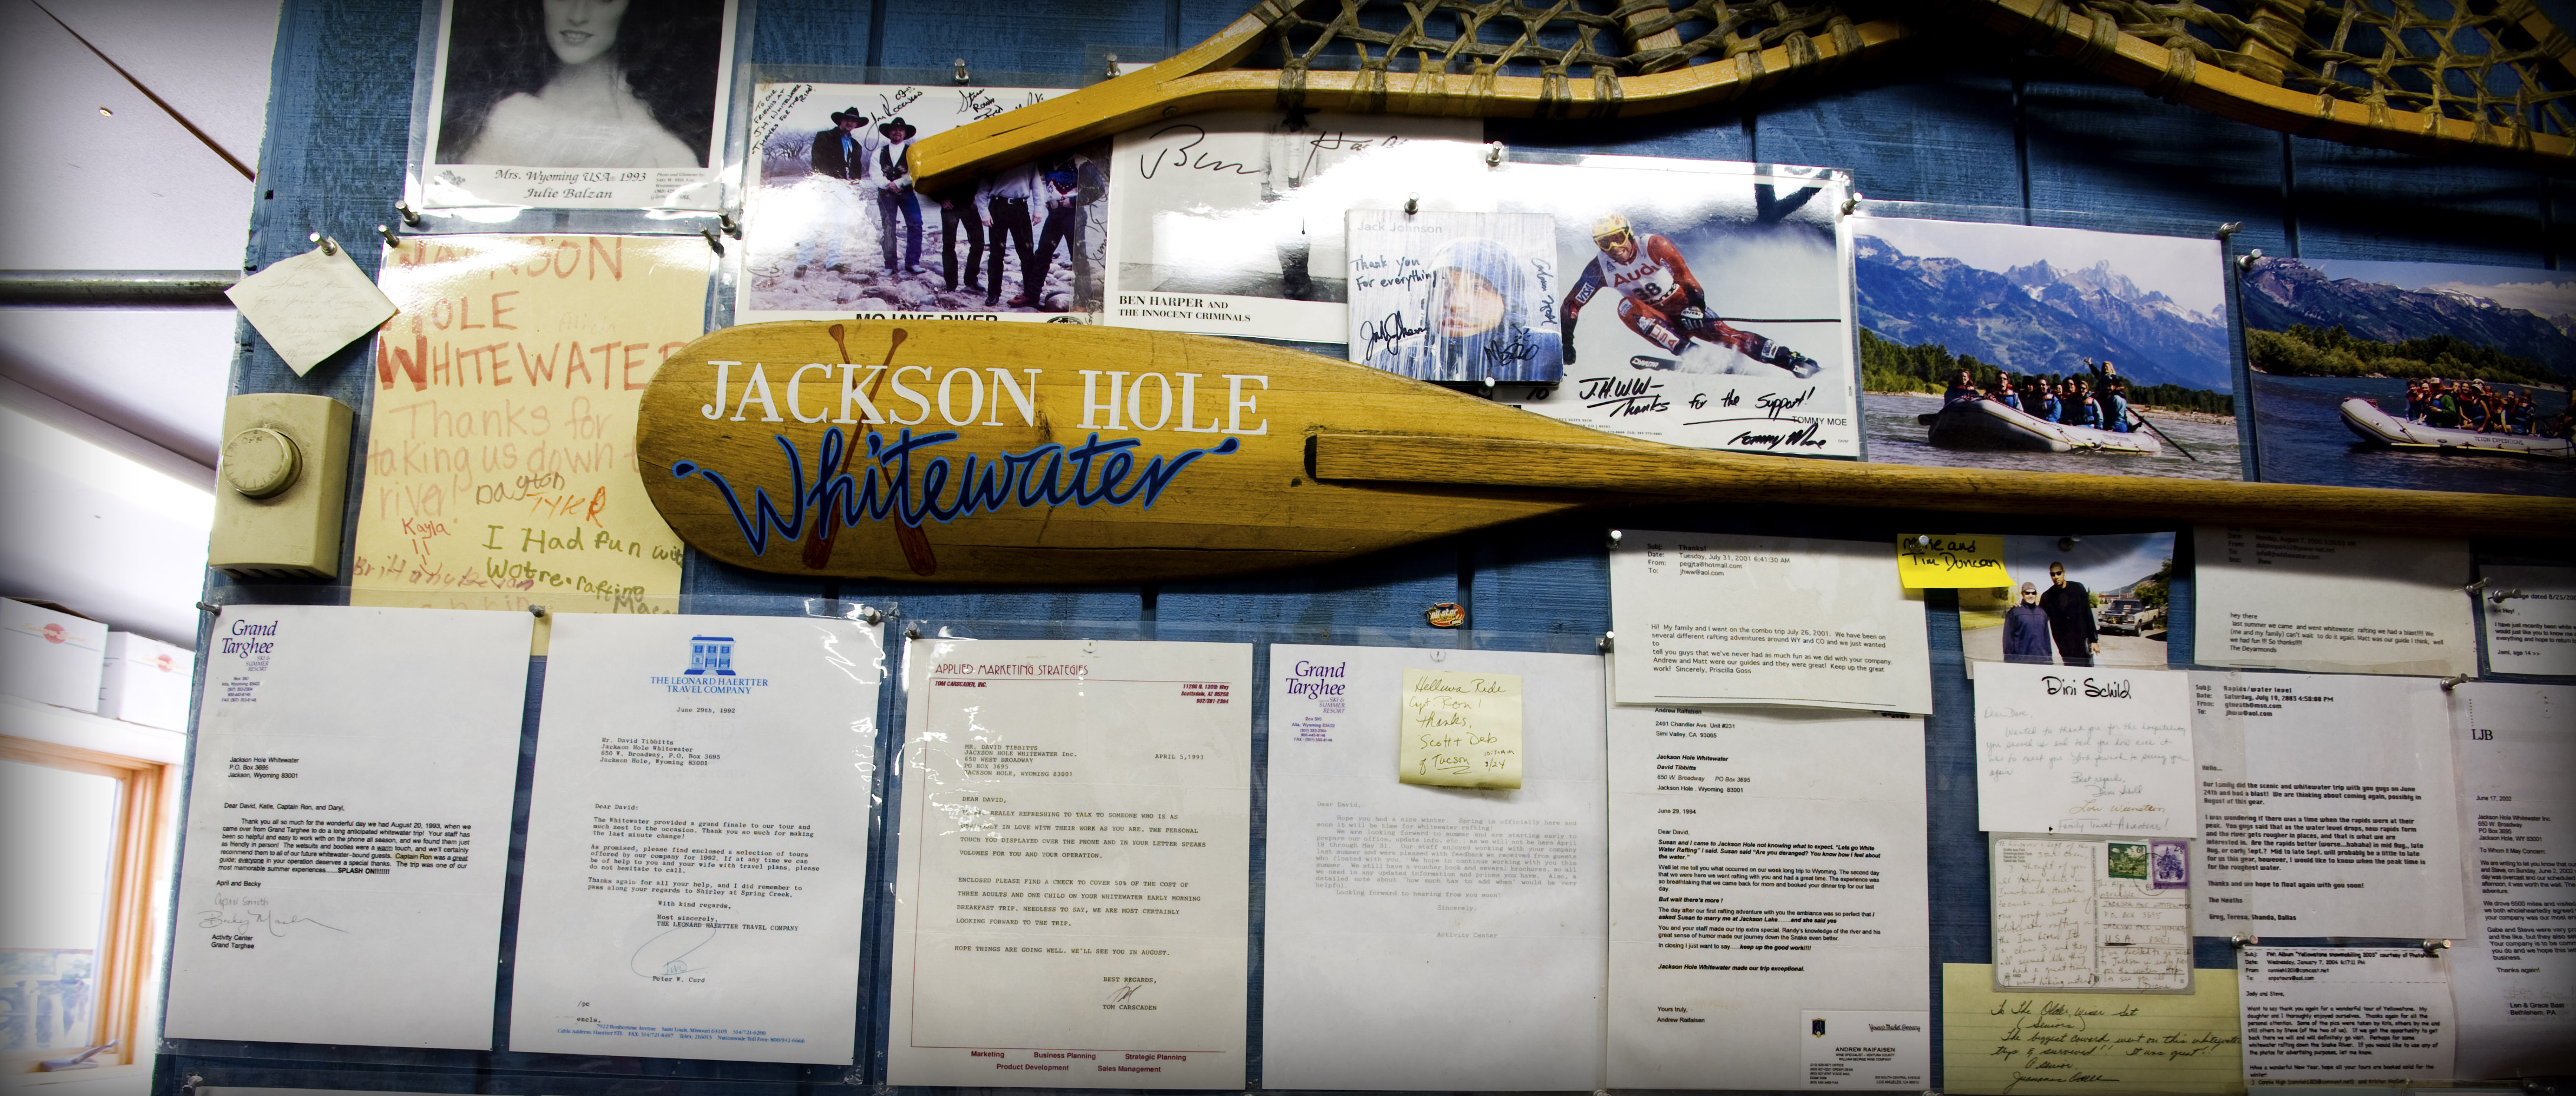 Jackson Hole boathouse - Scenic floats and rafting